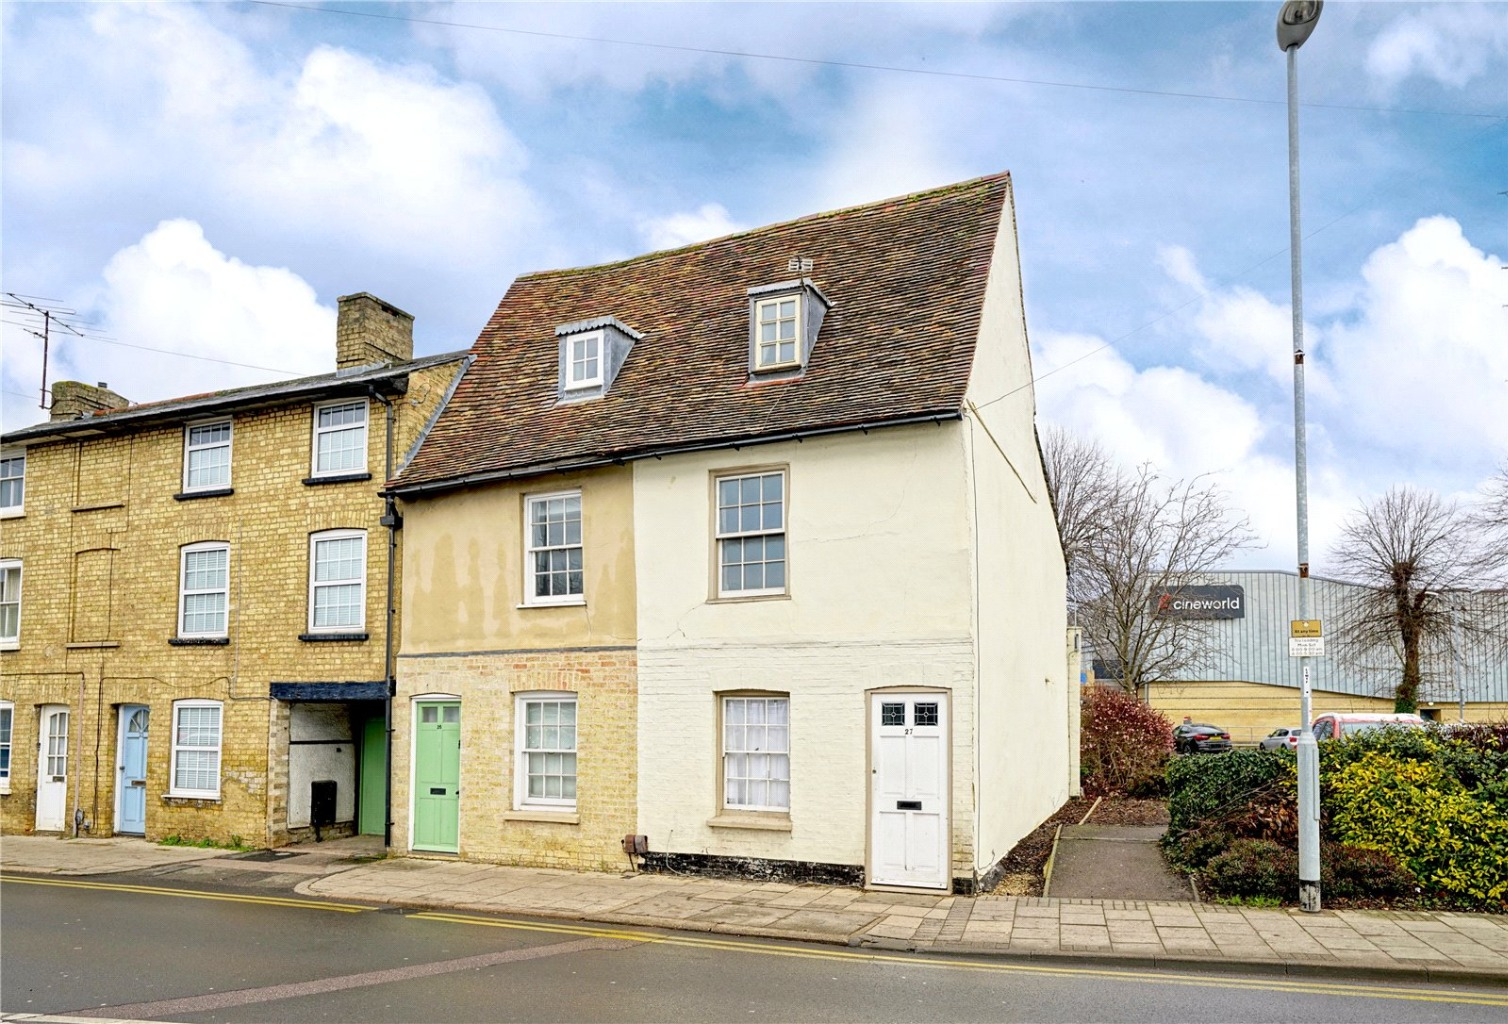 2 bed end of terrace house for sale in Cambridge Street, St. Neots - Property Image 1